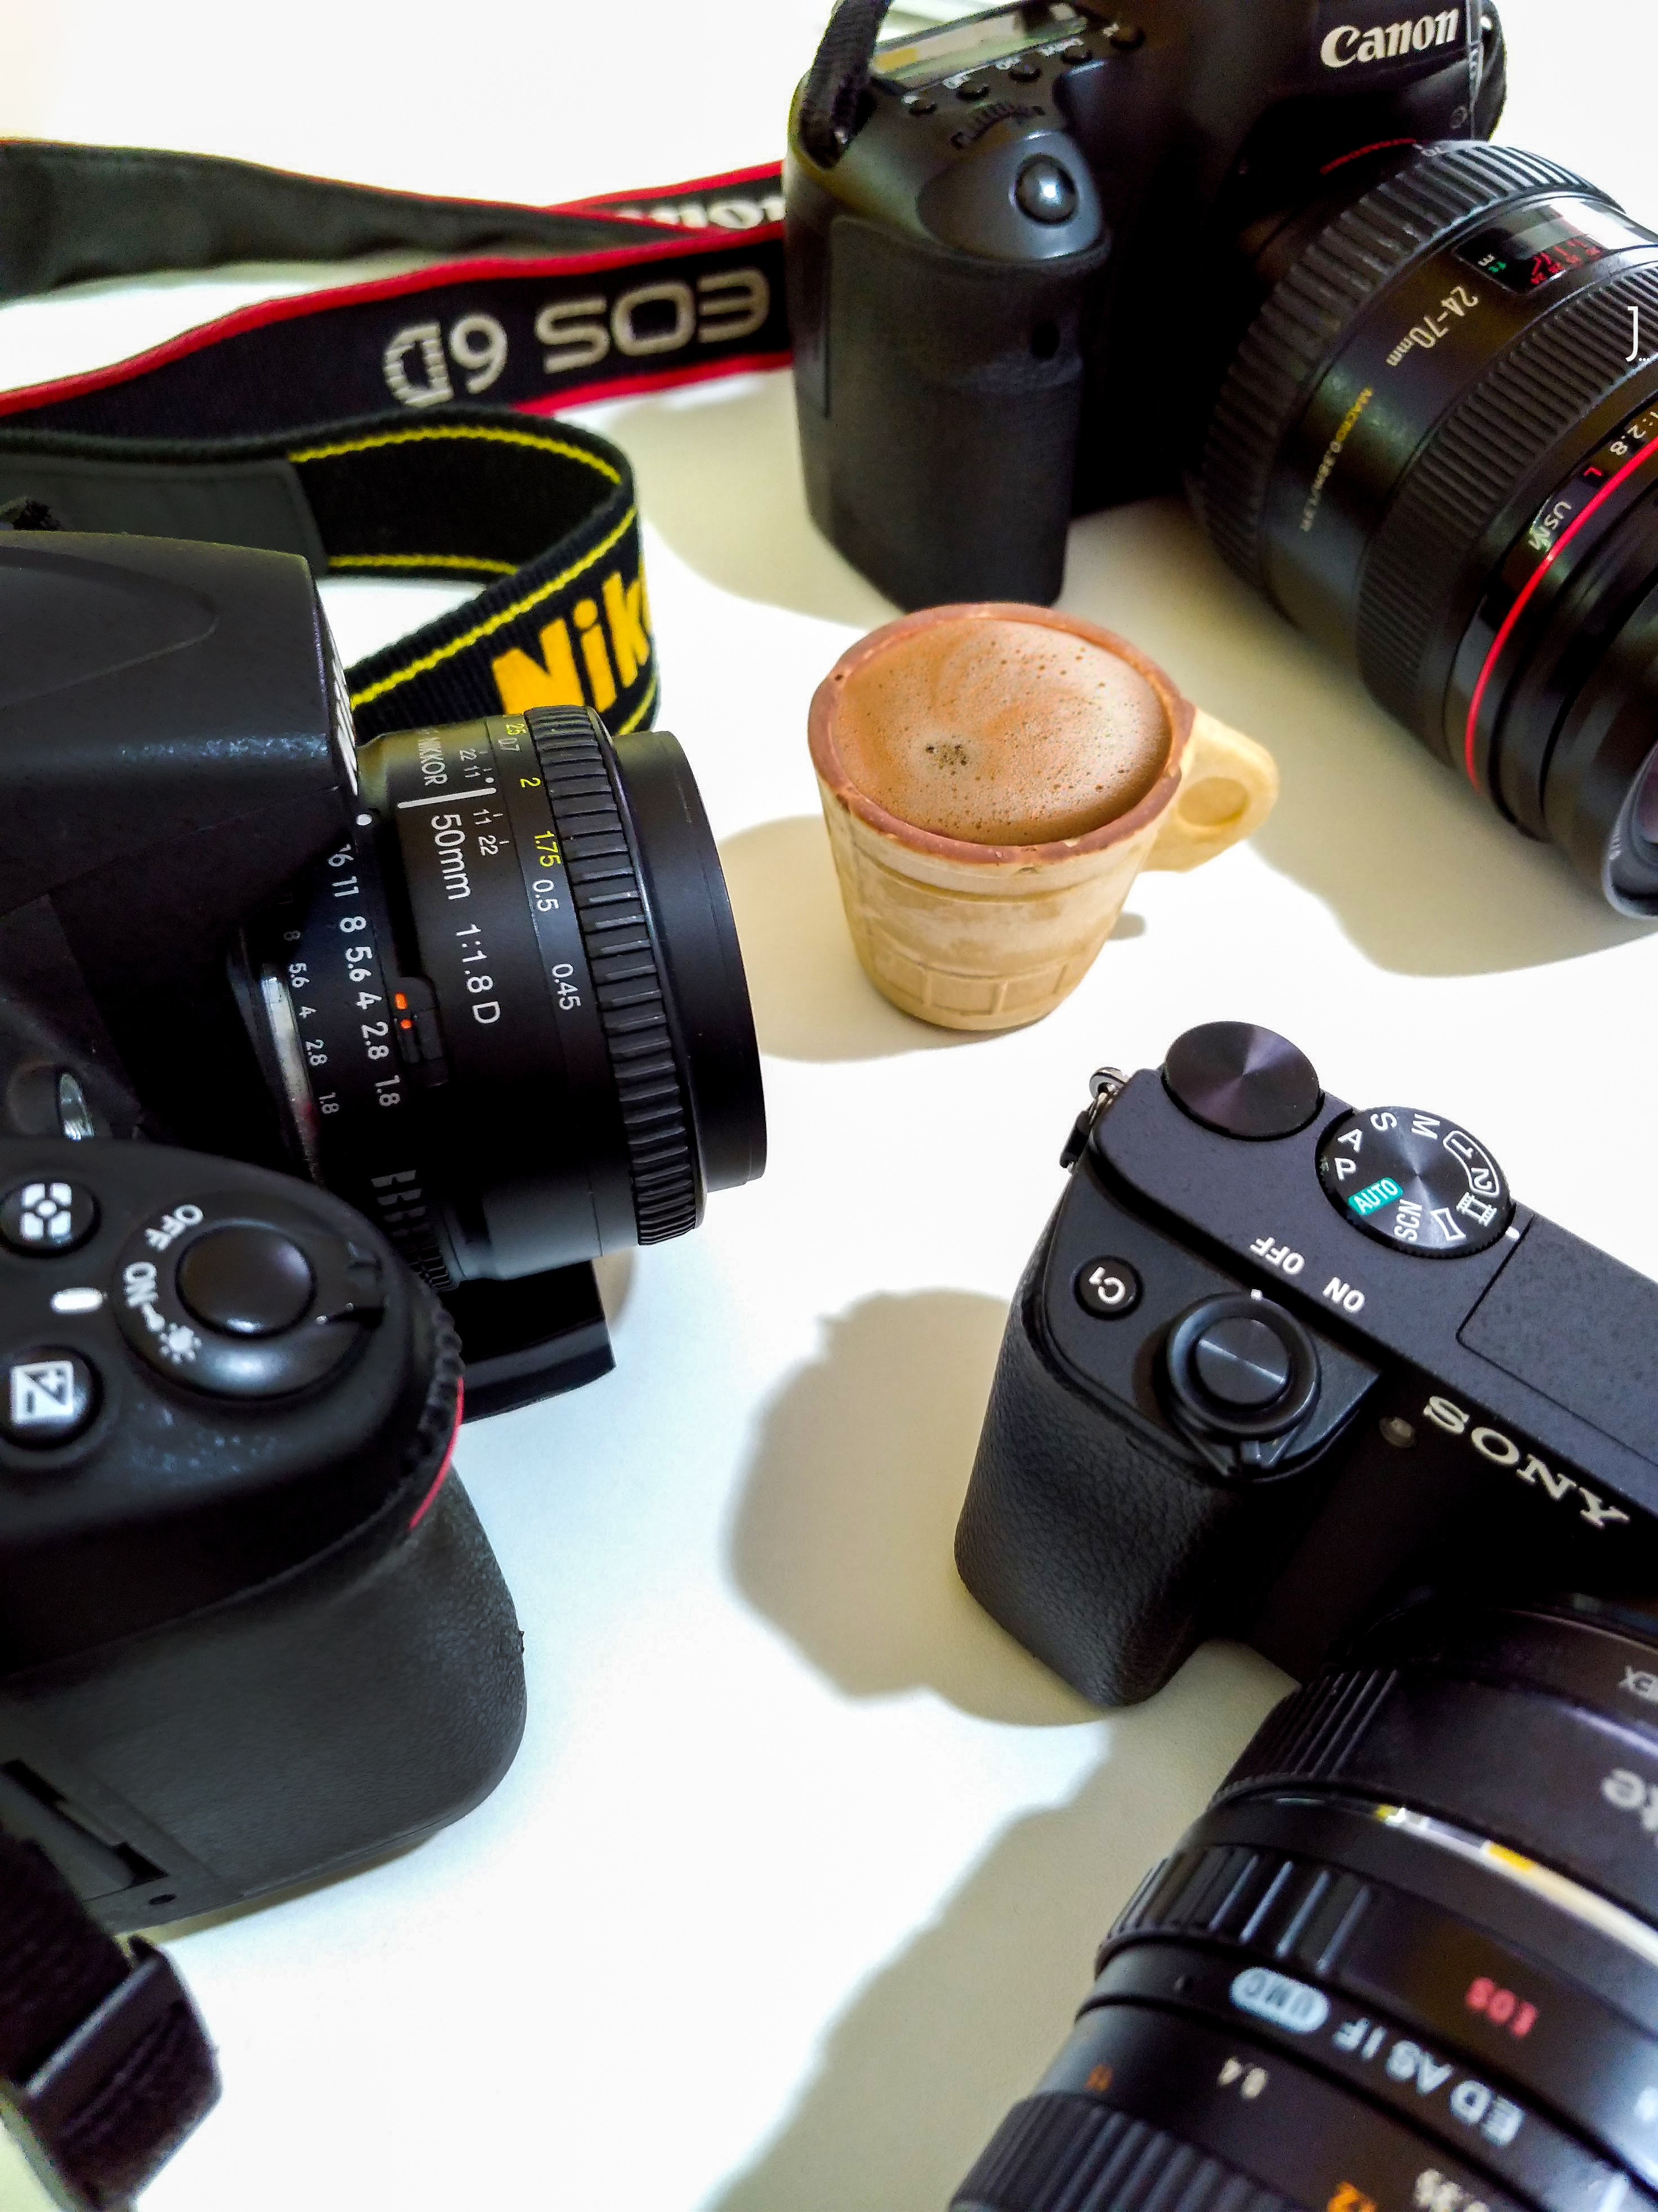 Top APS C cameras for 2019 image